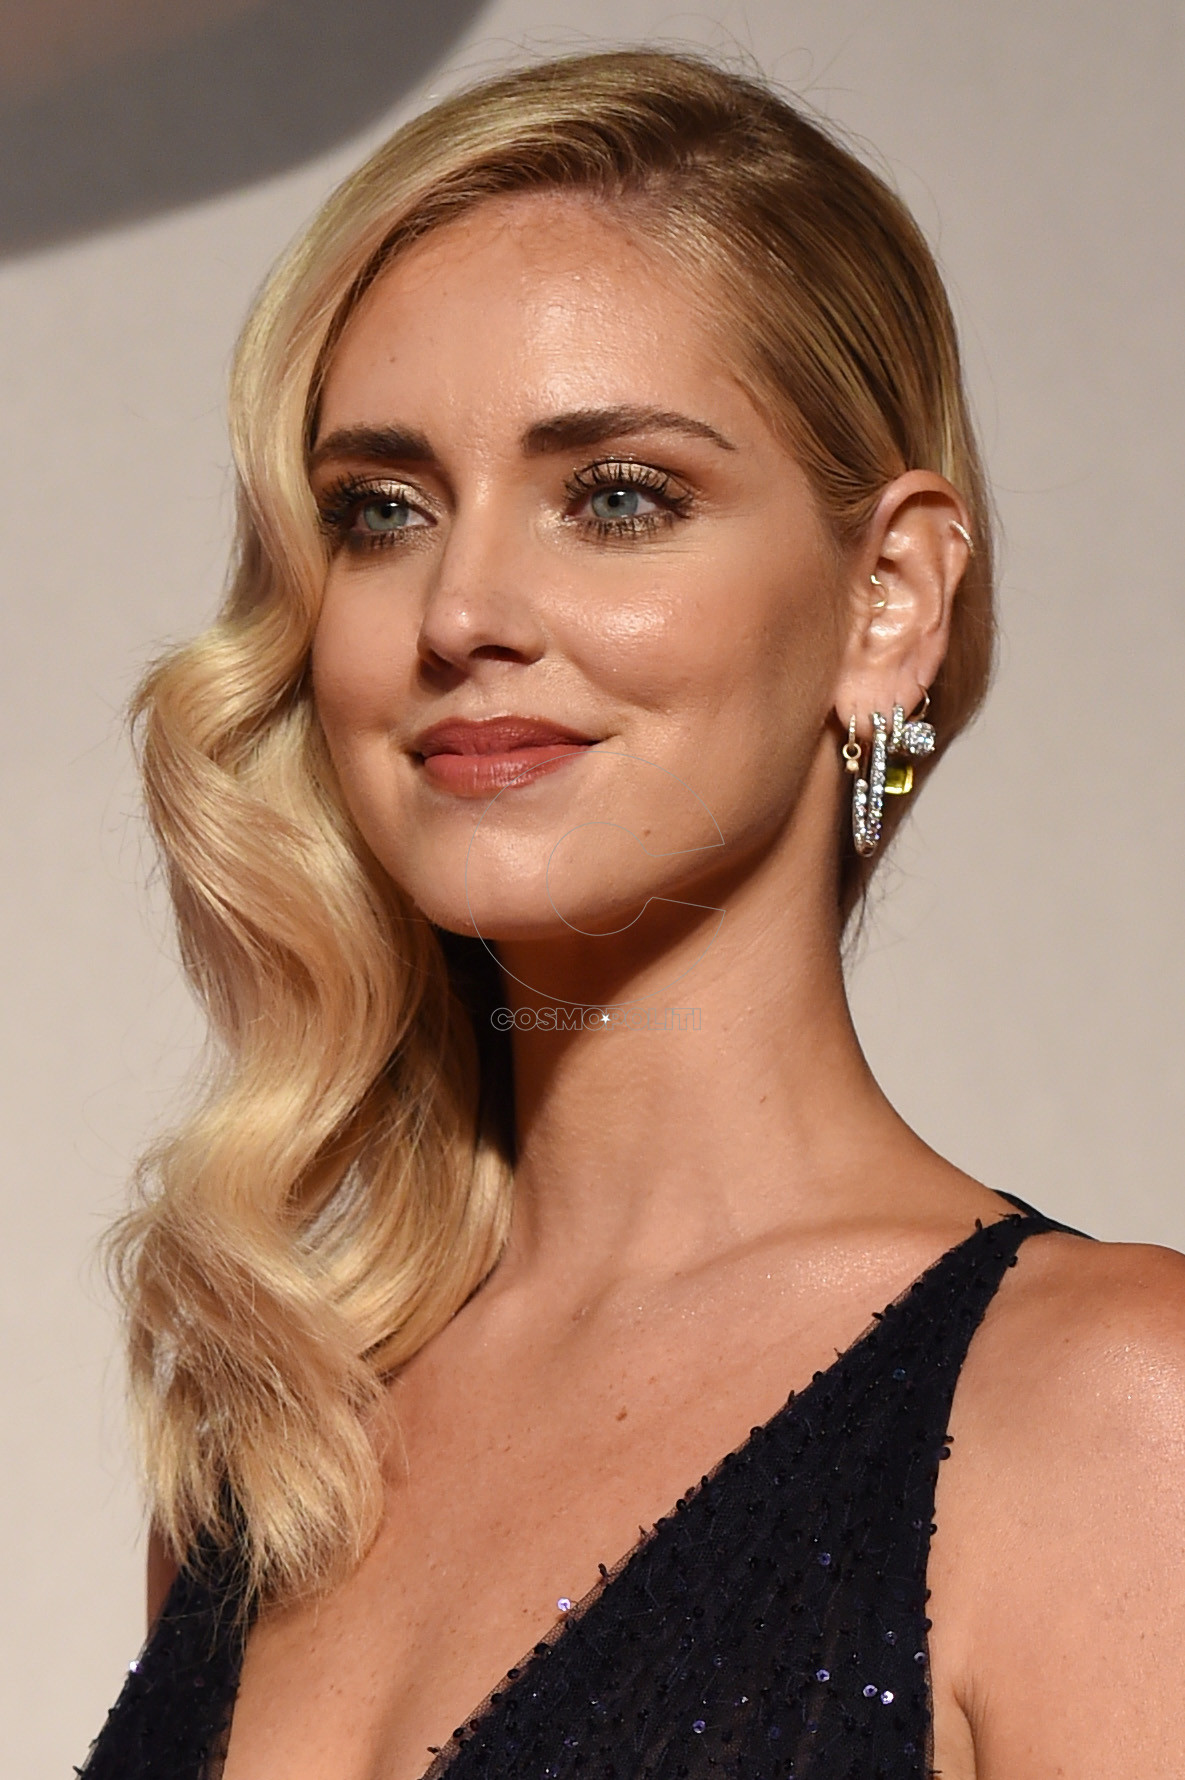 """VENICE, ITALY - SEPTEMBER 04: Chiara Ferragni walks the red carpet ahead of the """"Chiara Ferragni - Unposted"""" screening during the 76th Venice Film Festival at Sala Giardino on September 04, 2019 in Venice, Italy. (Photo by Stefania D'Alessandro/WireImage,)"""